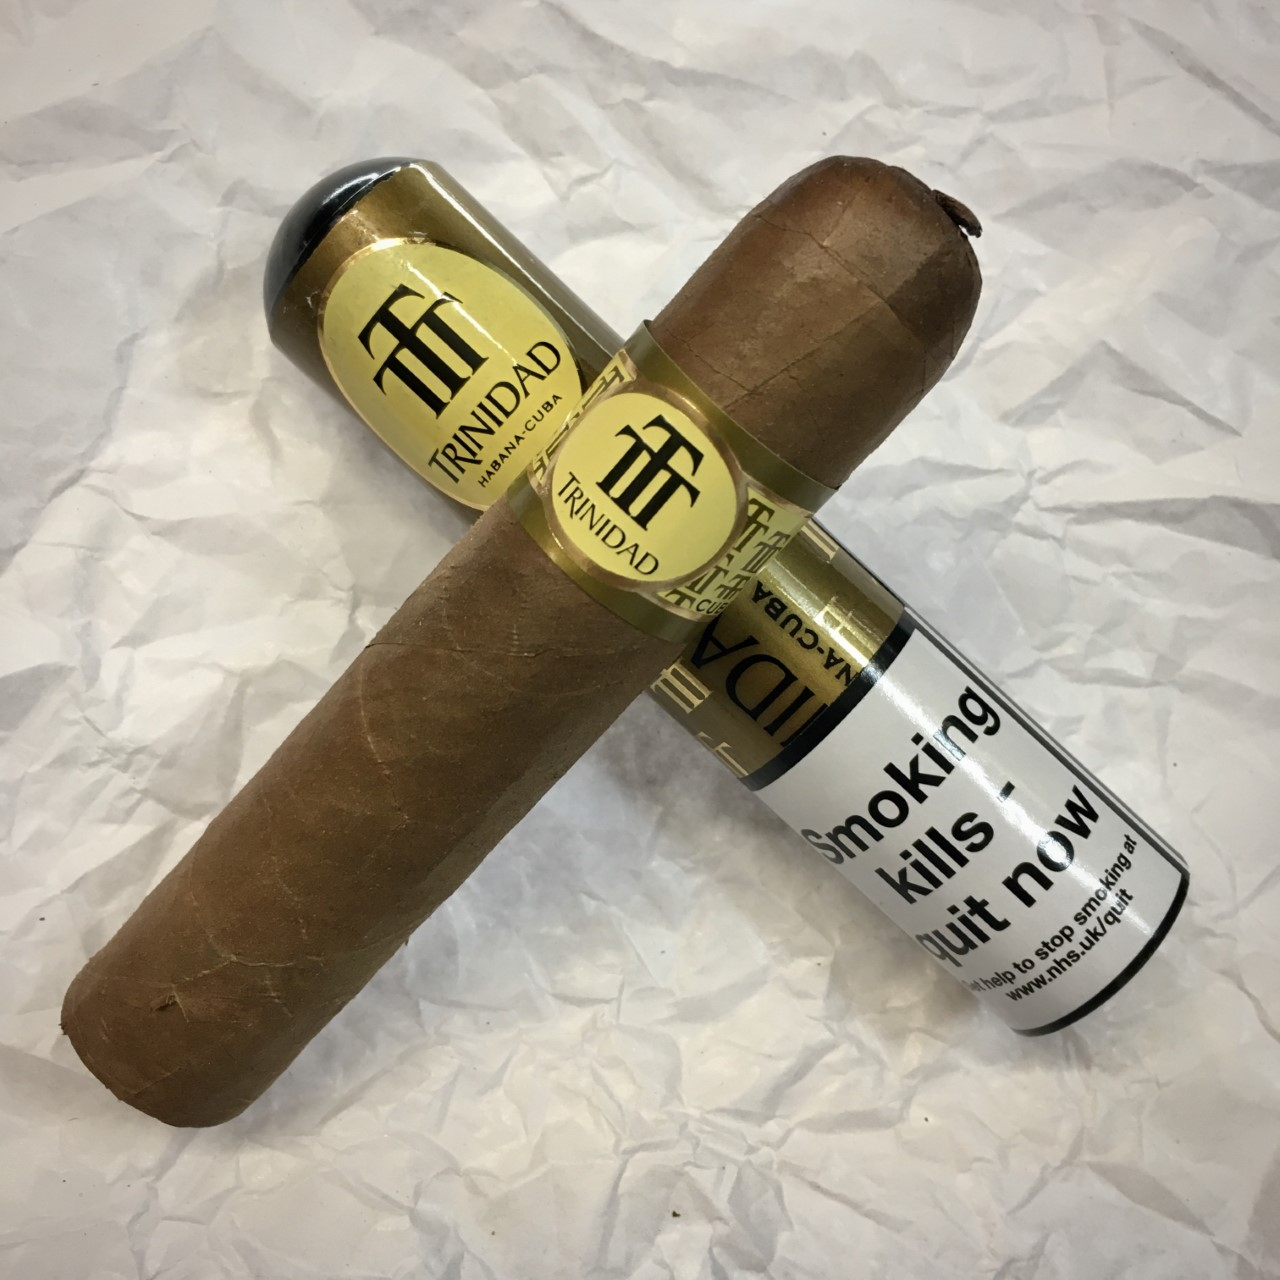 Trinidad Vigia - Tubed Single Cigar